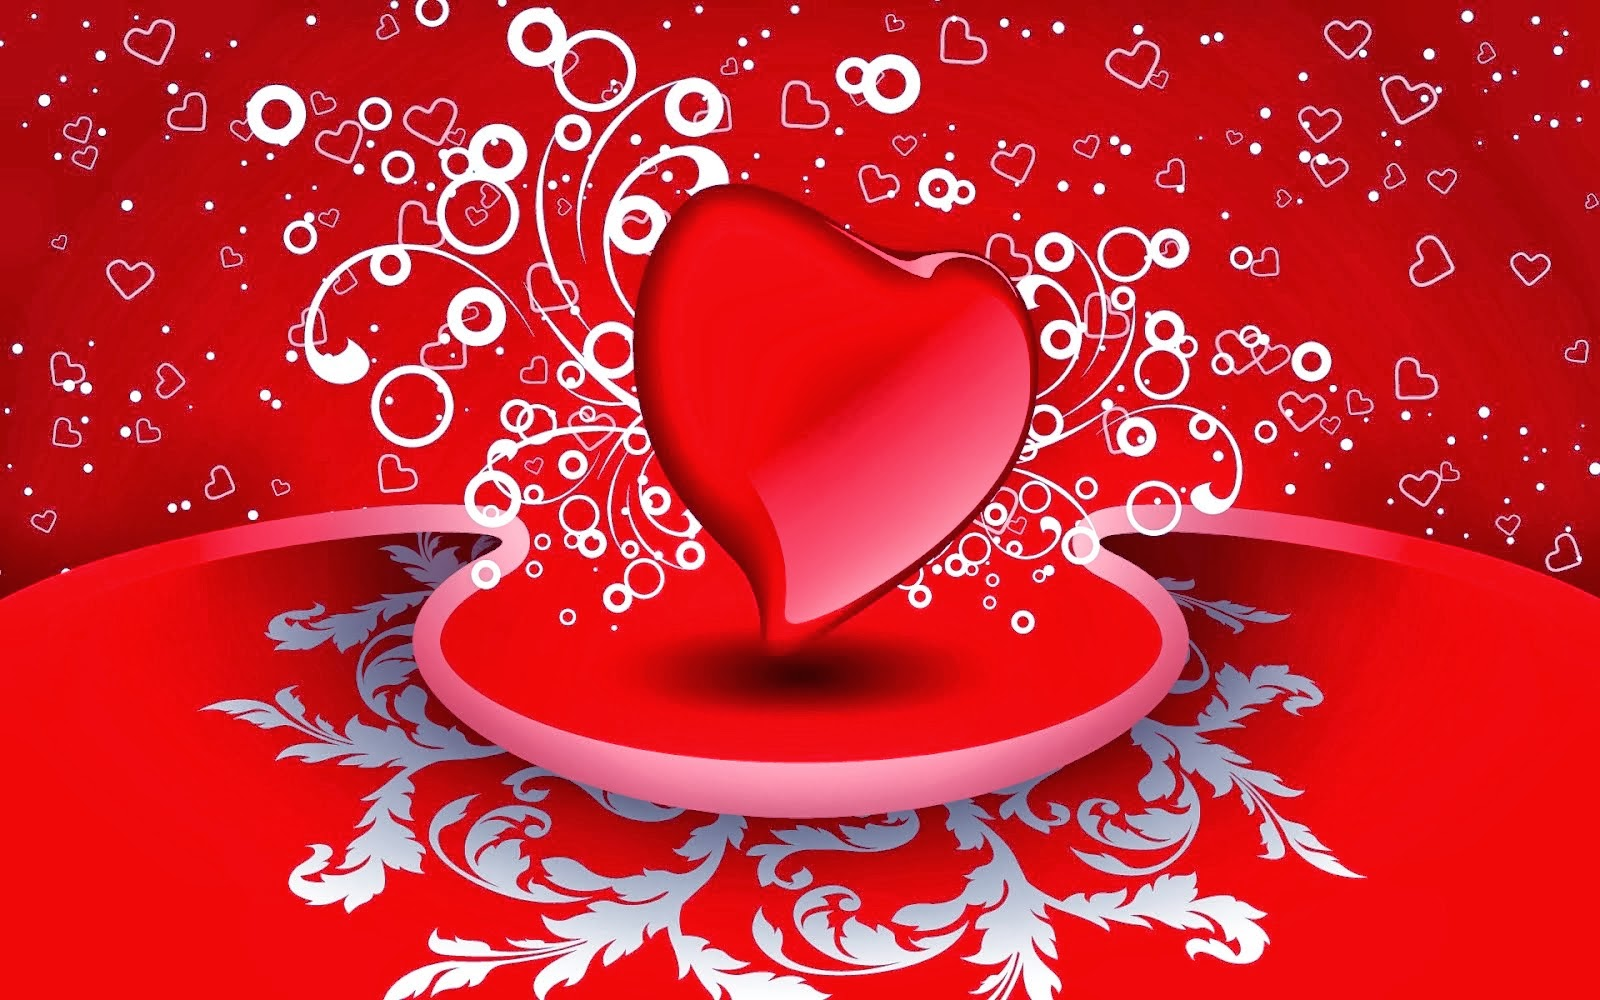 Valentine's Day Images for all